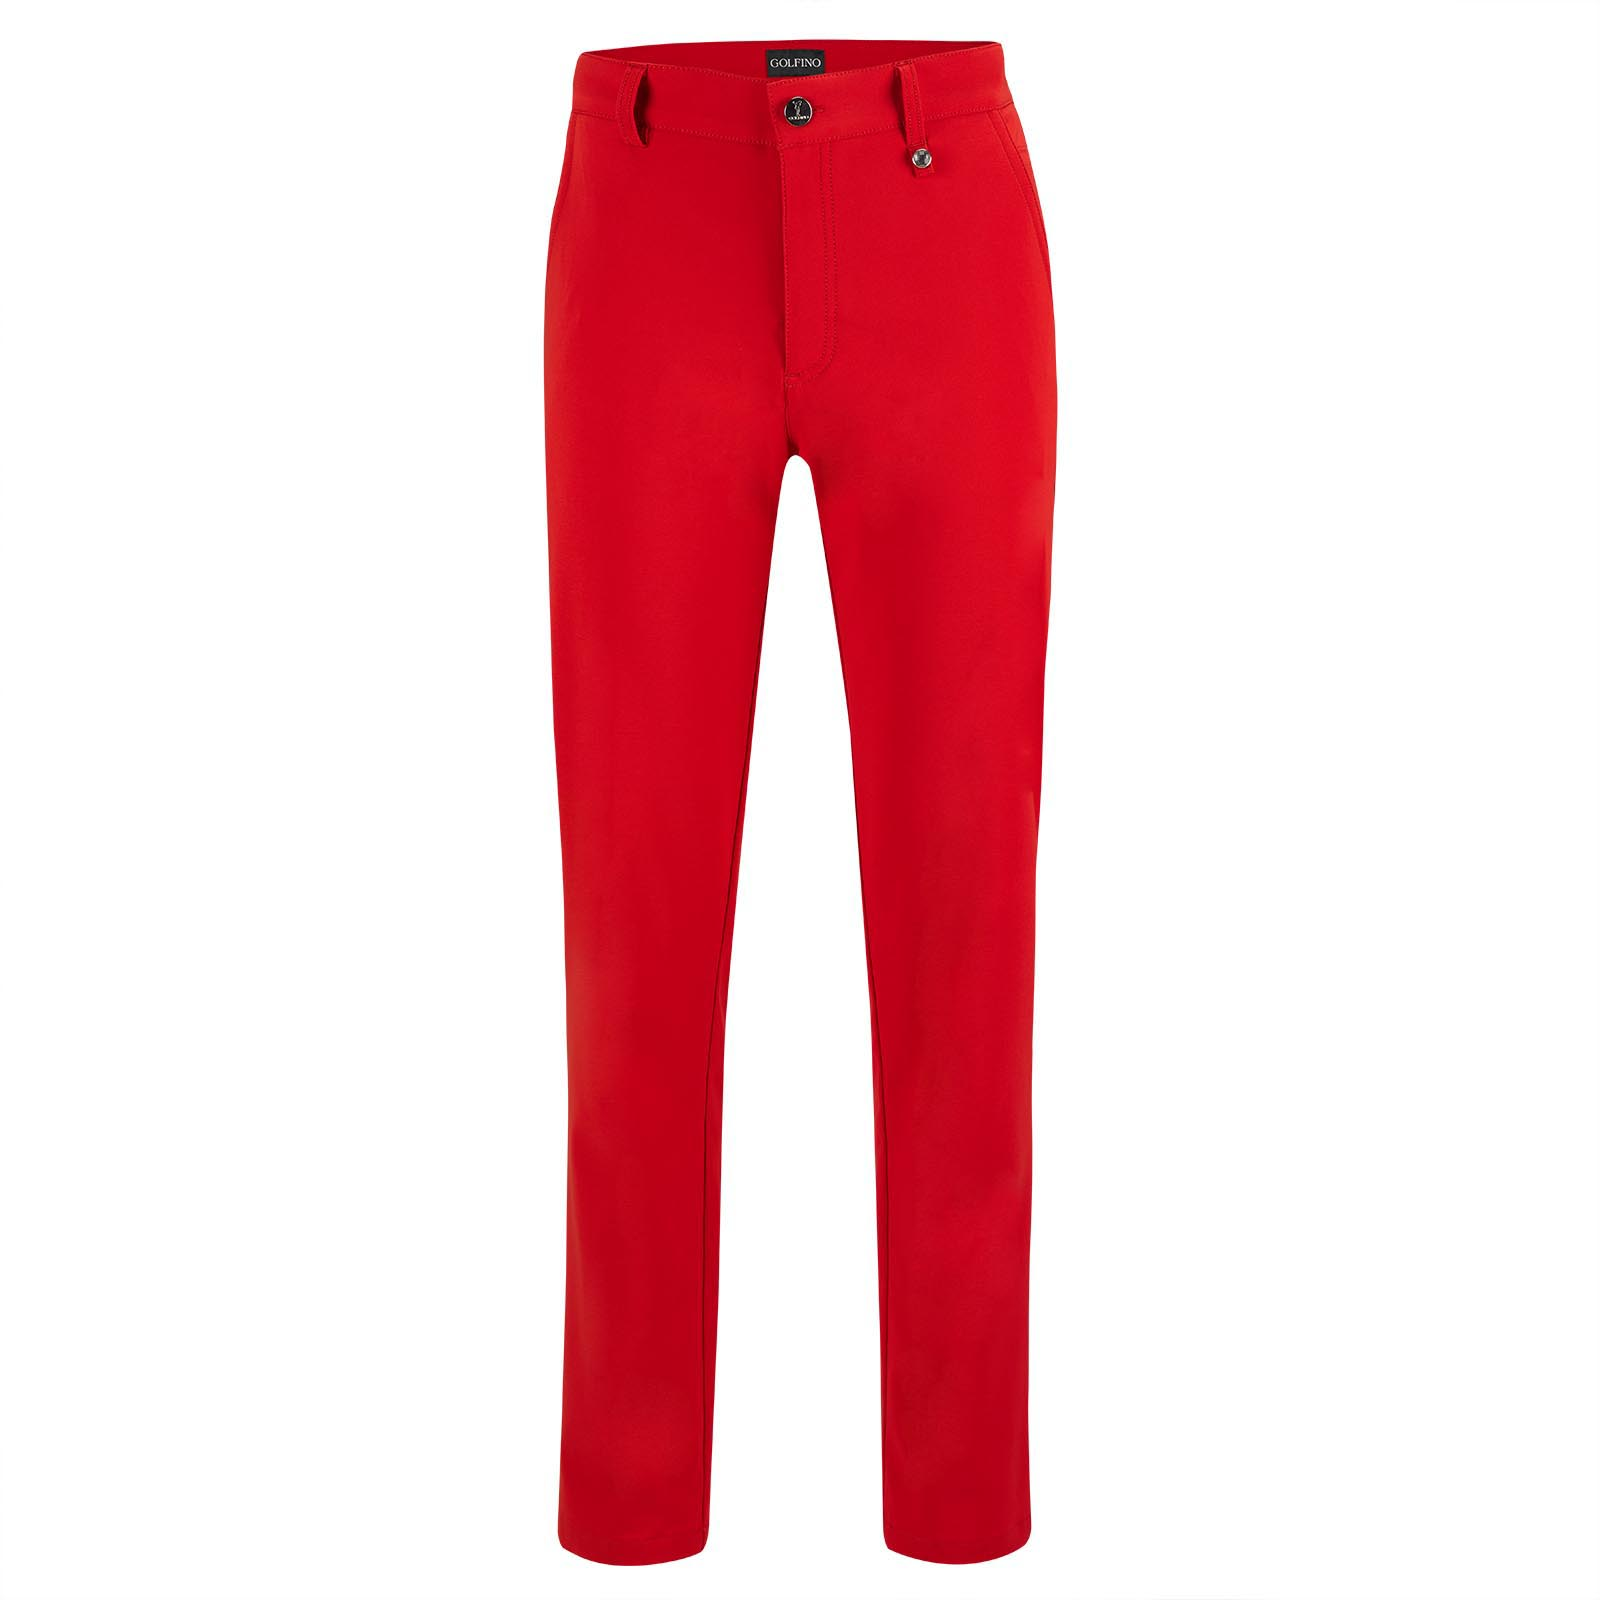 Water-resistant Ladies' golf trousers with stretch function